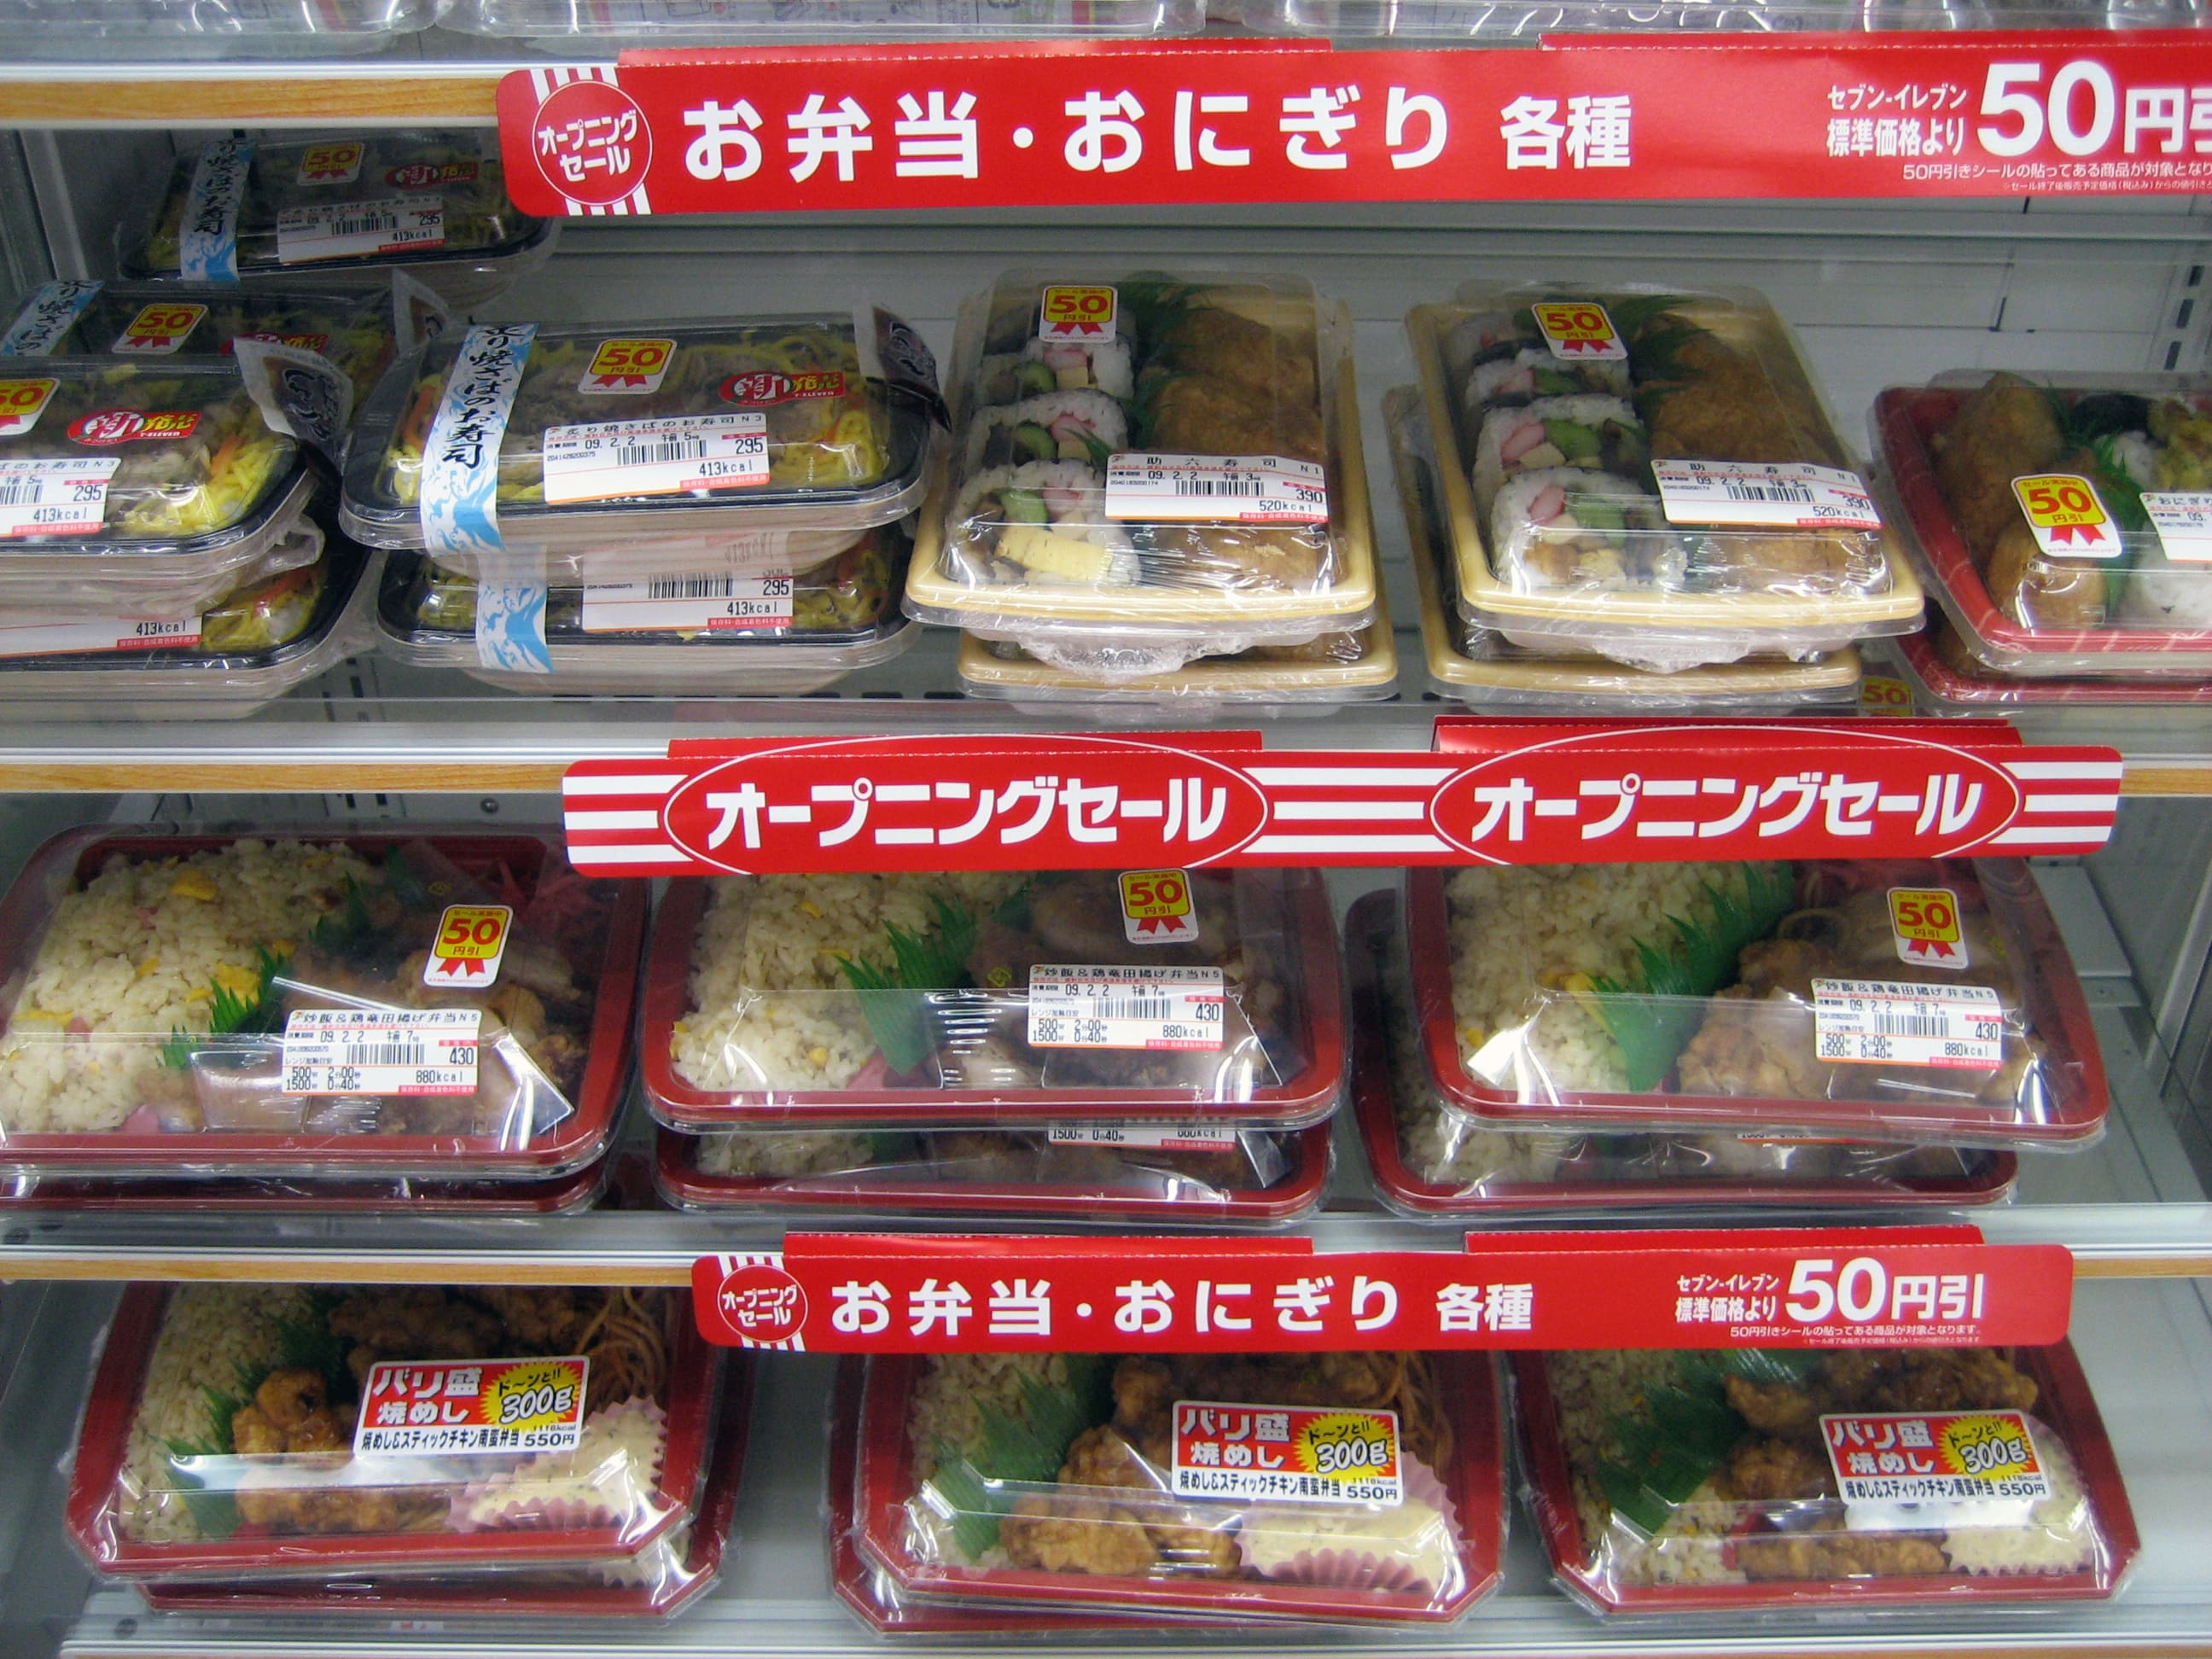 10 Items To Buy From Japanese 7Eleven Convenience Stores